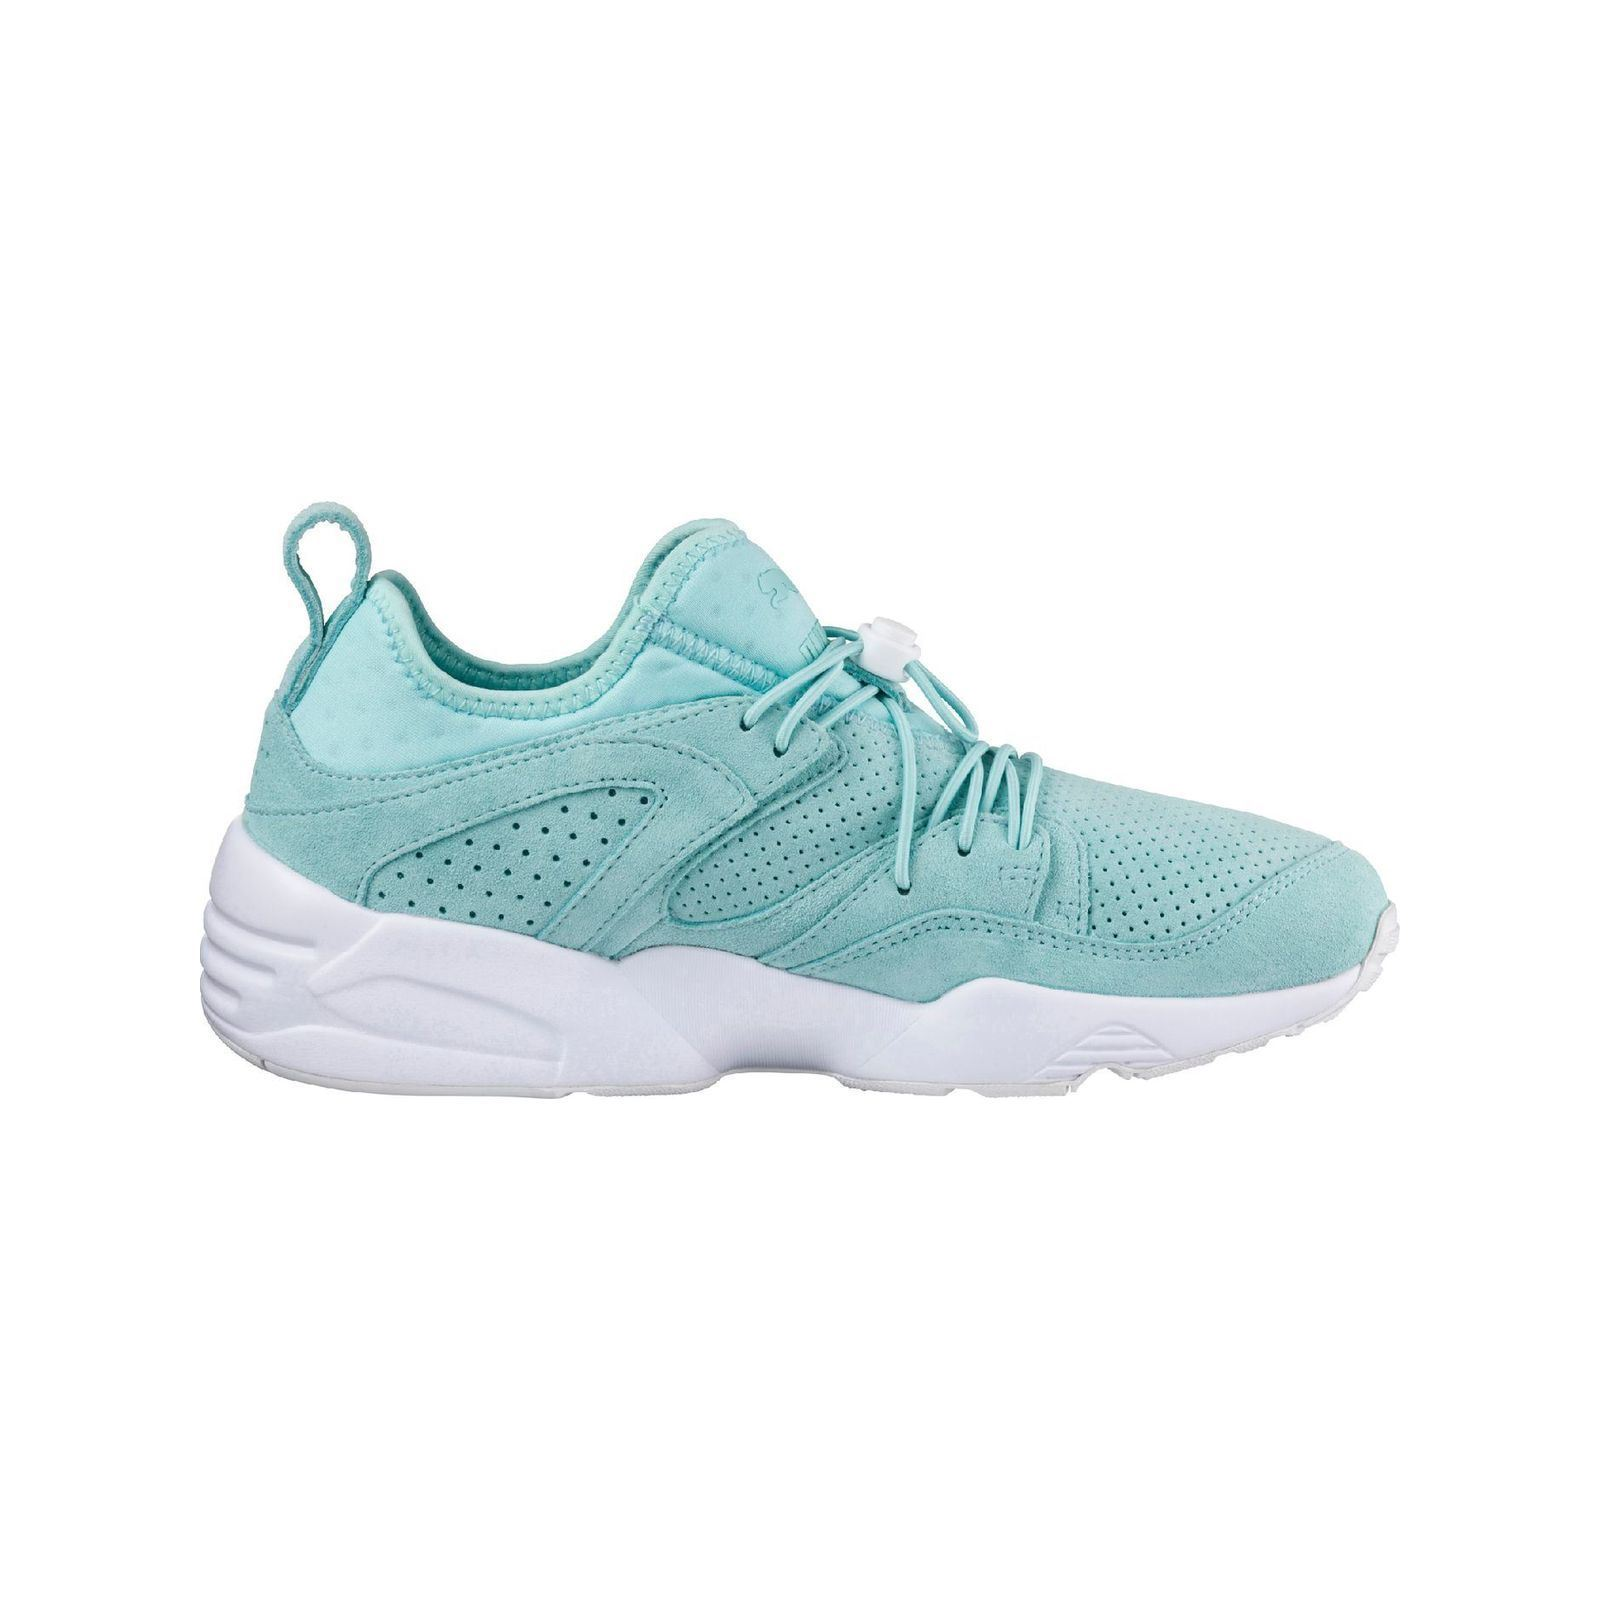 Soft Sneakers TurcheseBrandalley Puma Blaze Pelle Of Glory In BrCodxe